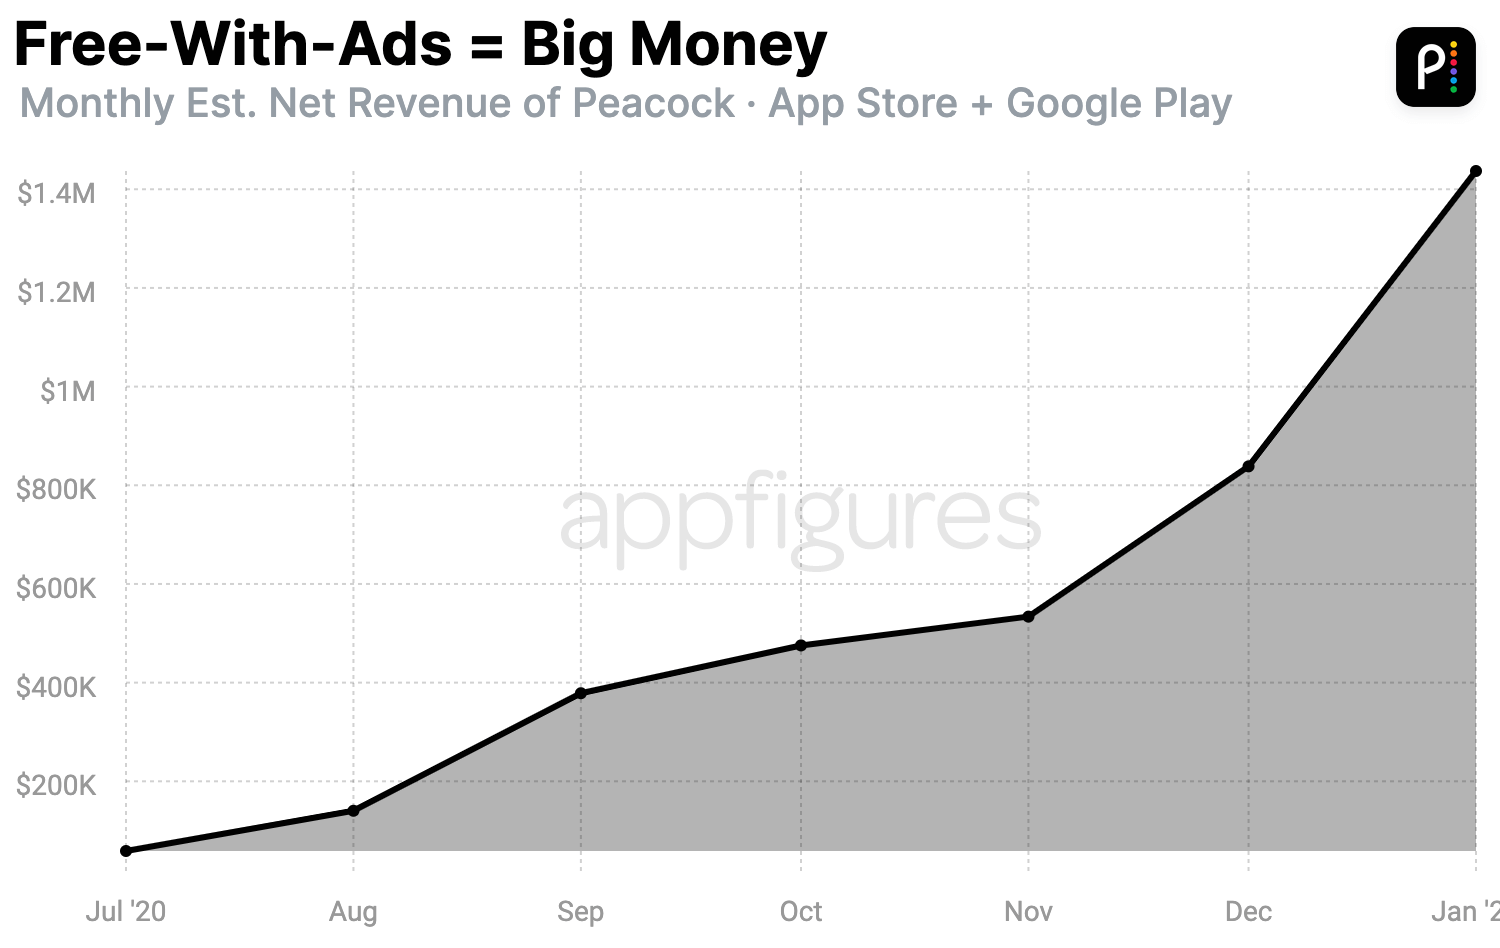 NBC's Peacock estimated monthly new revenue from Appfigures